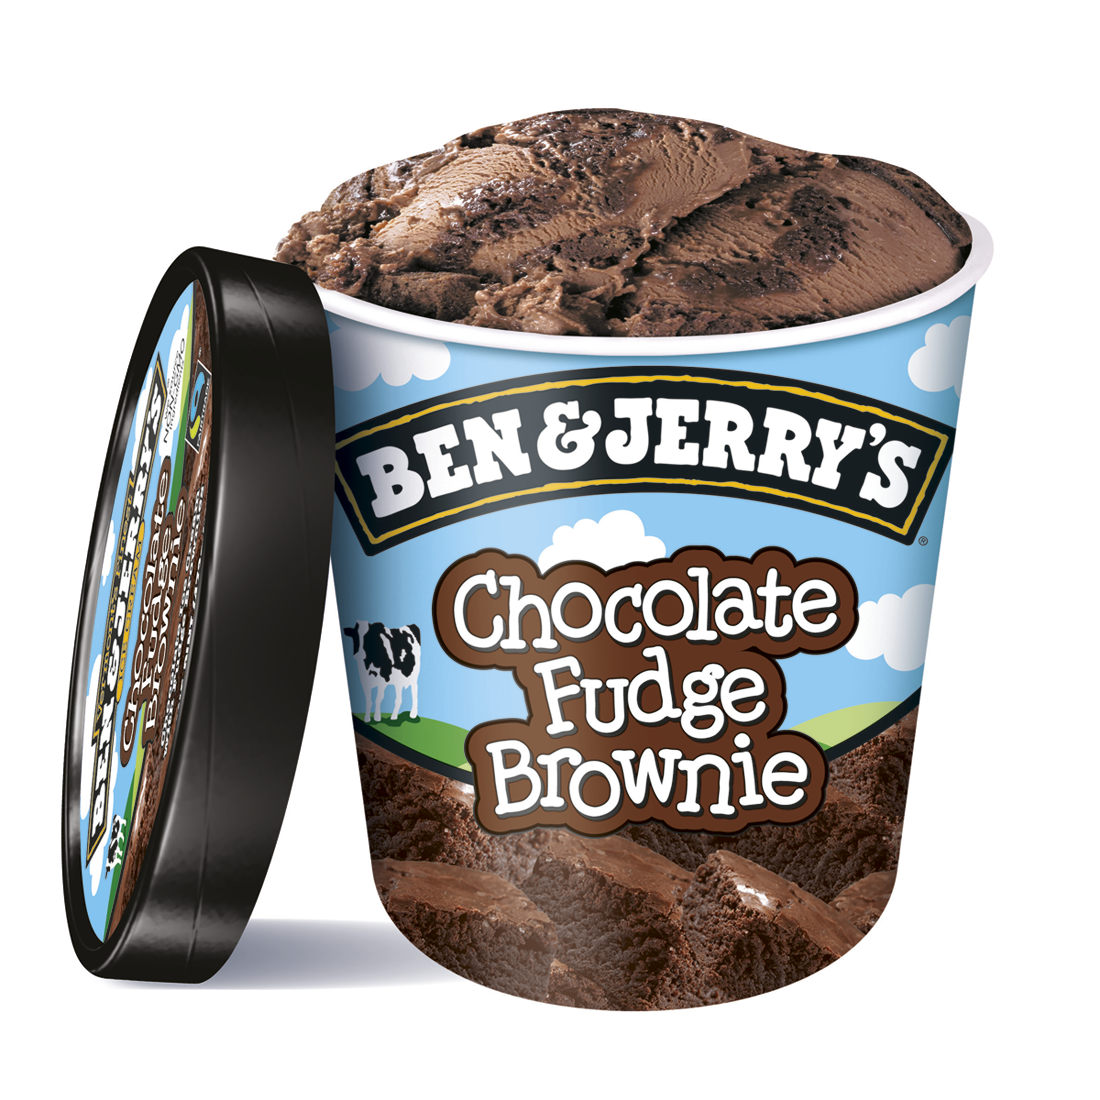 Ben & Jerry's fudge brownie helado chocolate con brownie de 50cl. en tarrina